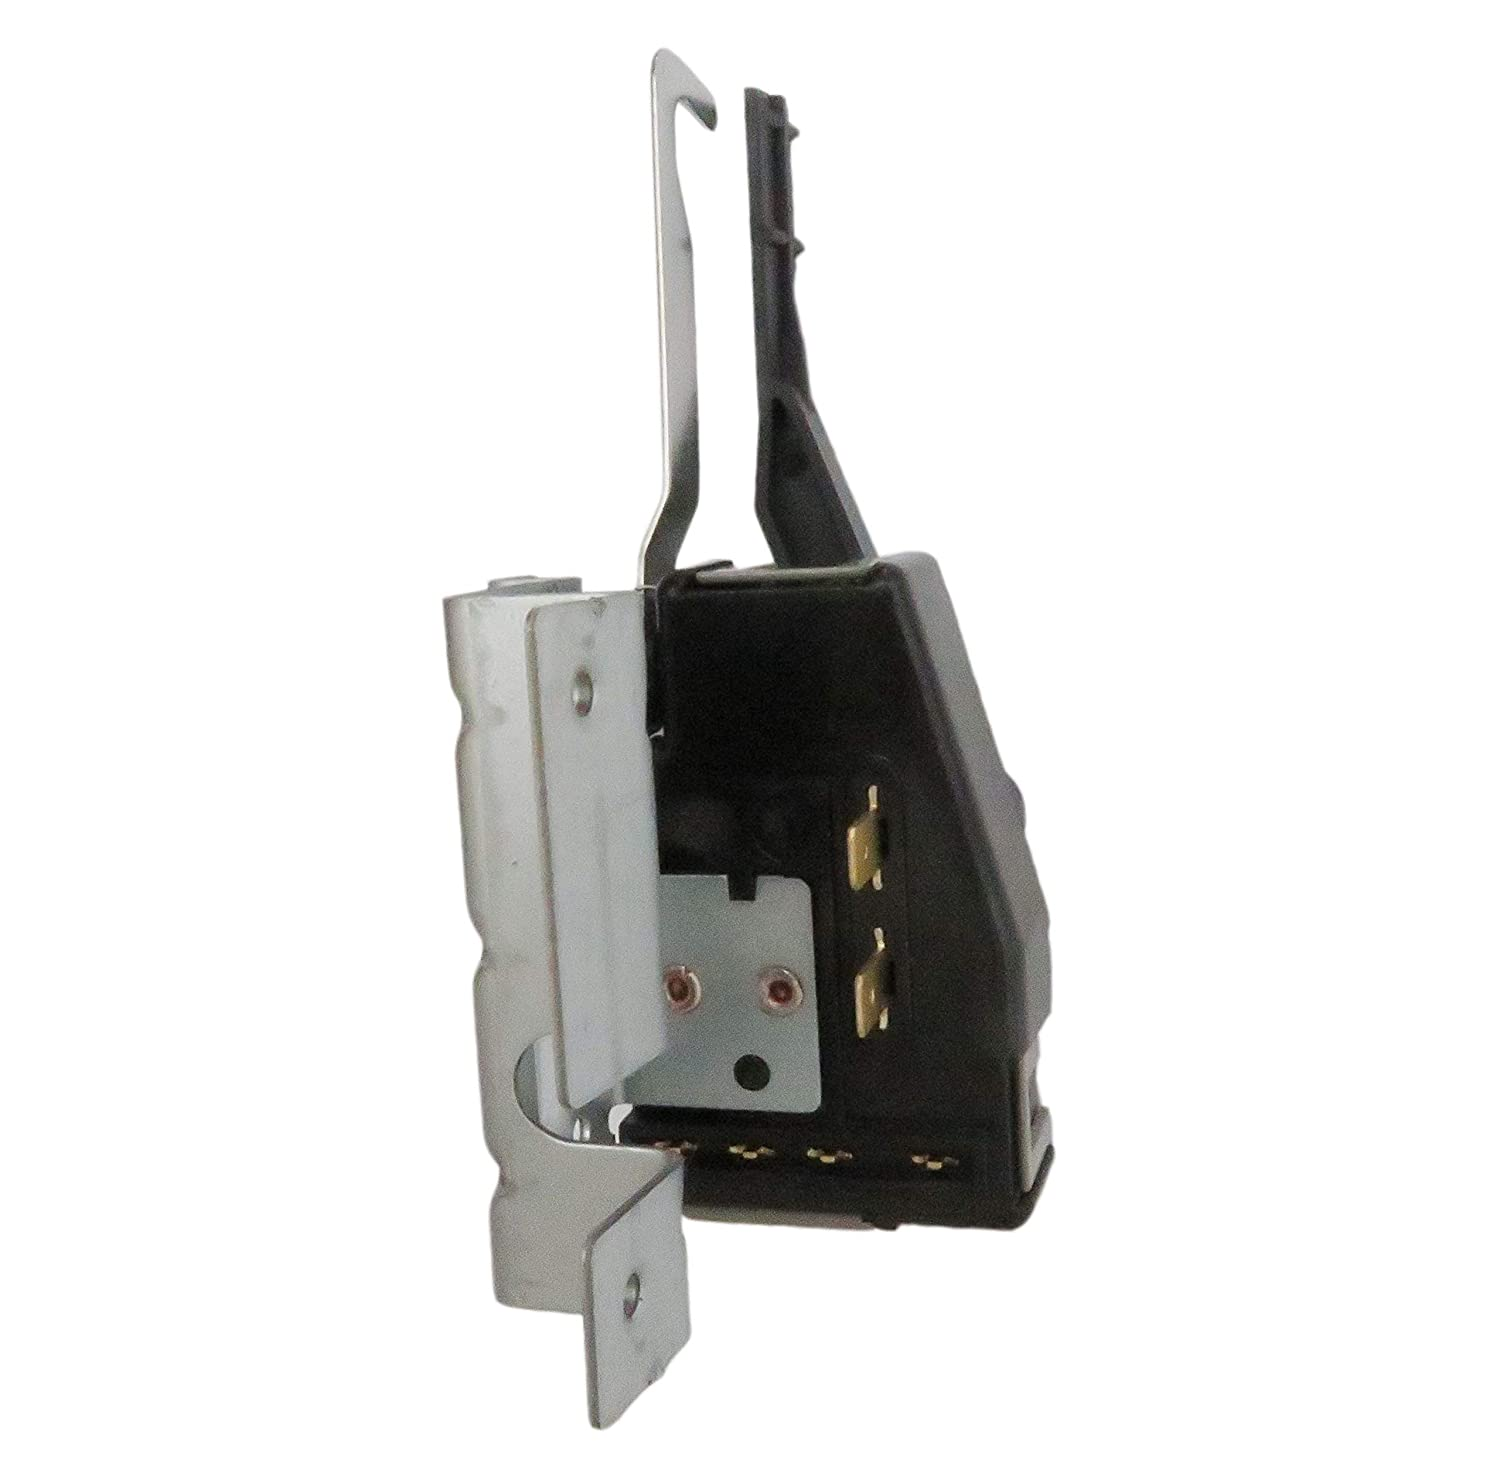 134101800,5303306138 Washer Lid Lock Switch Assembly Washer Replacement for Frigidaire Replaces AP2108159 PS648775